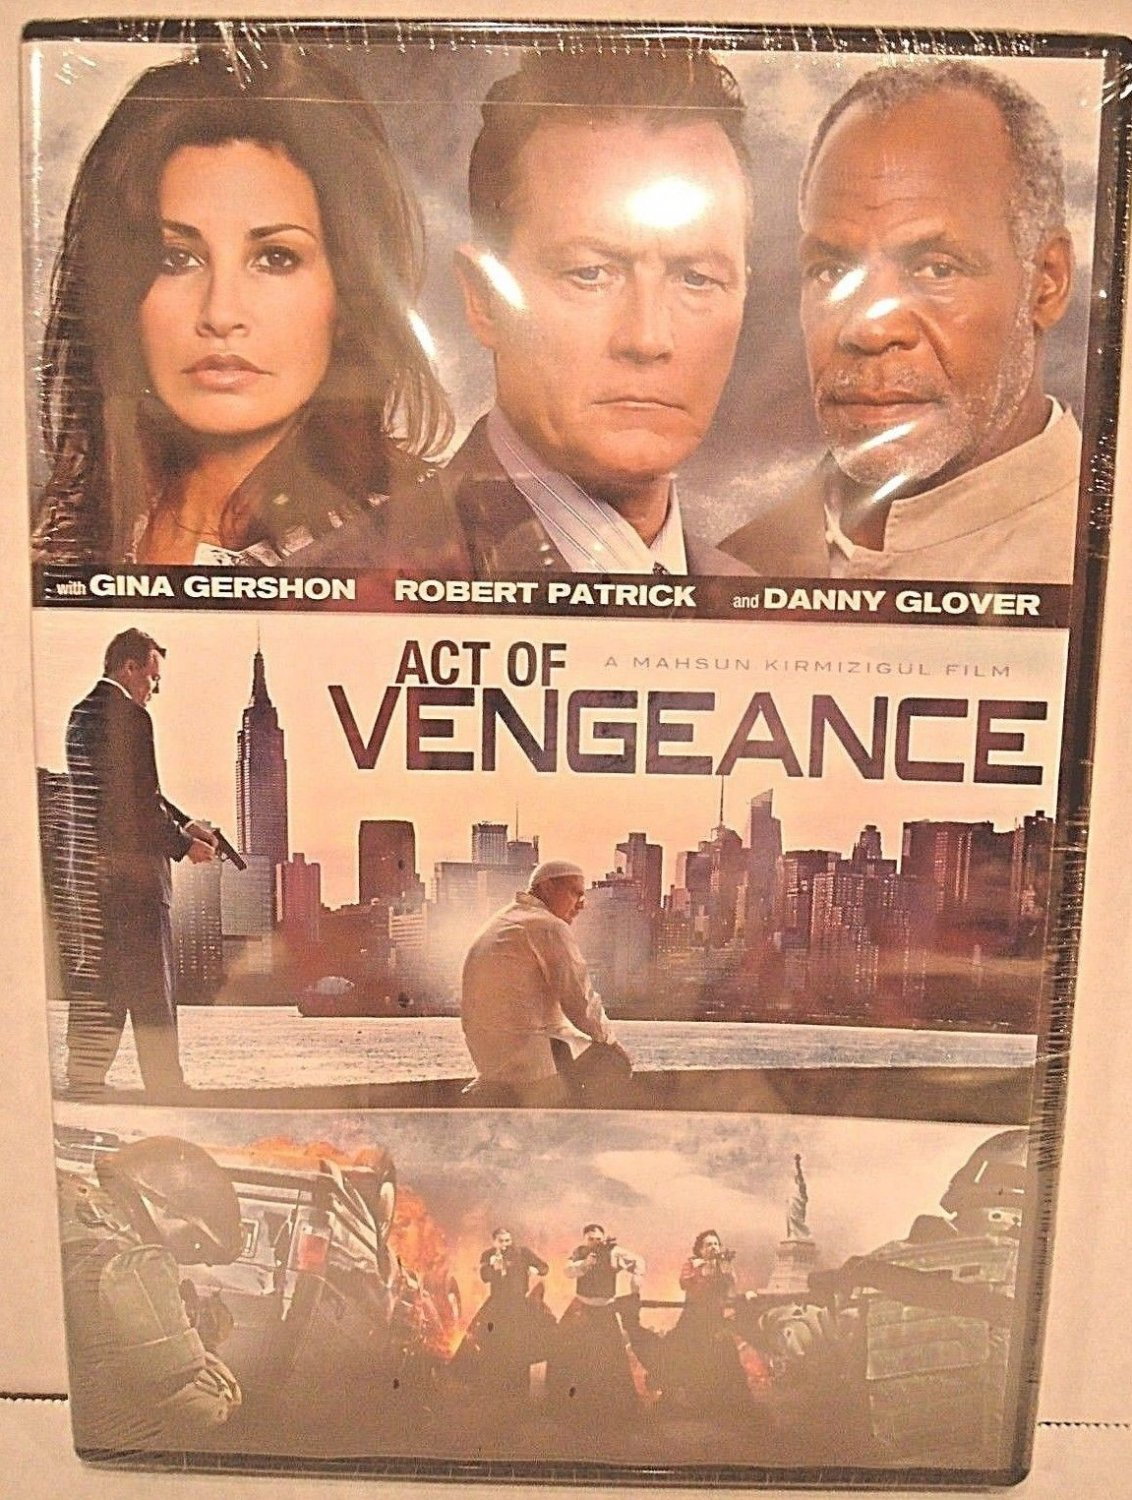 ACT OF VENGEANCE - DVD - ROBERT PATRICK - DANNY GLOVER - NEW - ACTION - MOVIE